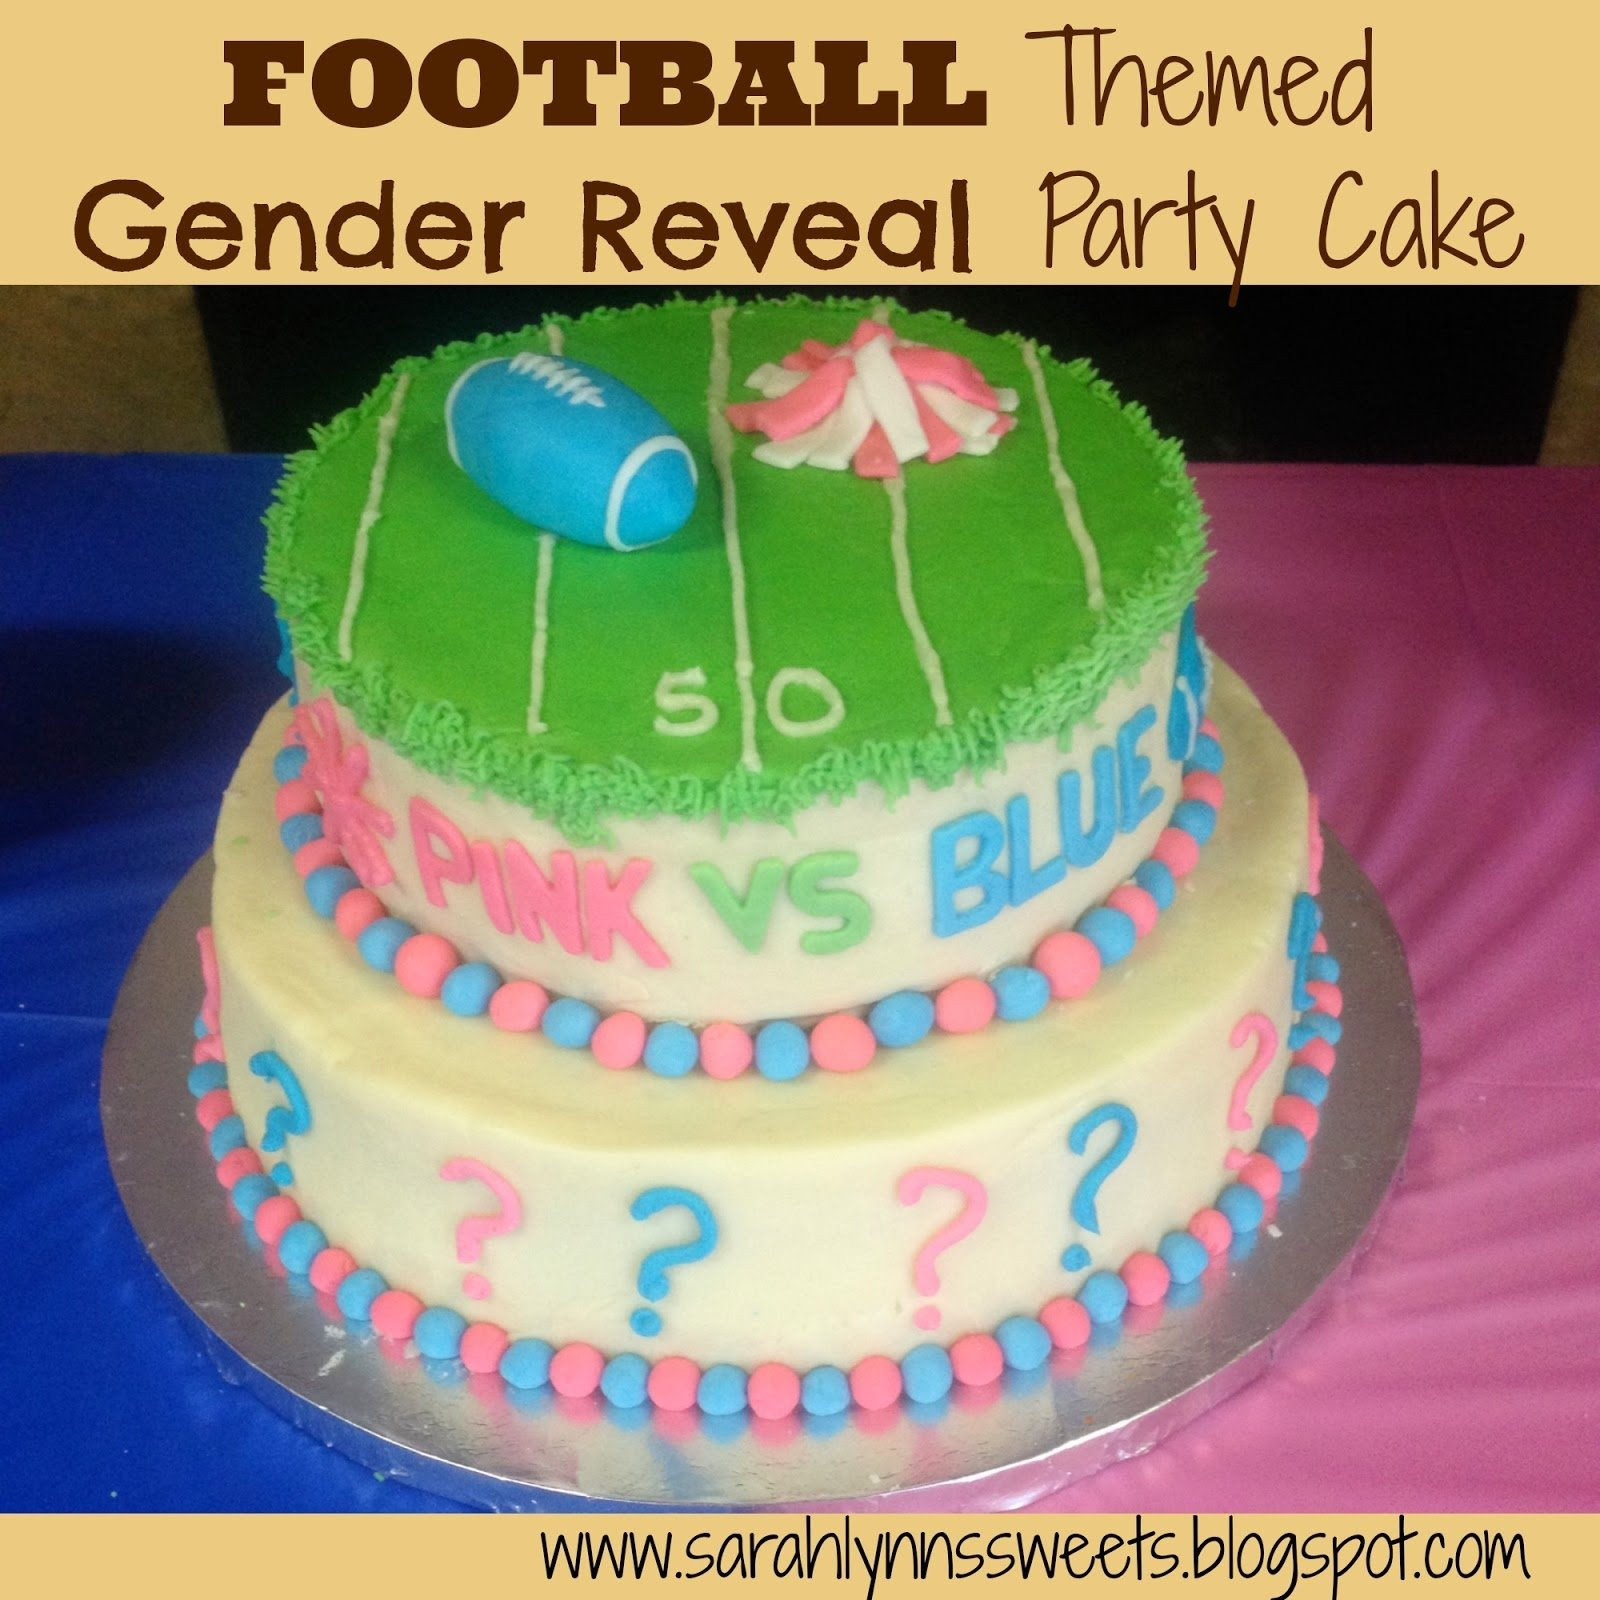 10 Stylish Gender Reveal Party Cake Ideas pink vs blue football gender reveal party 2020